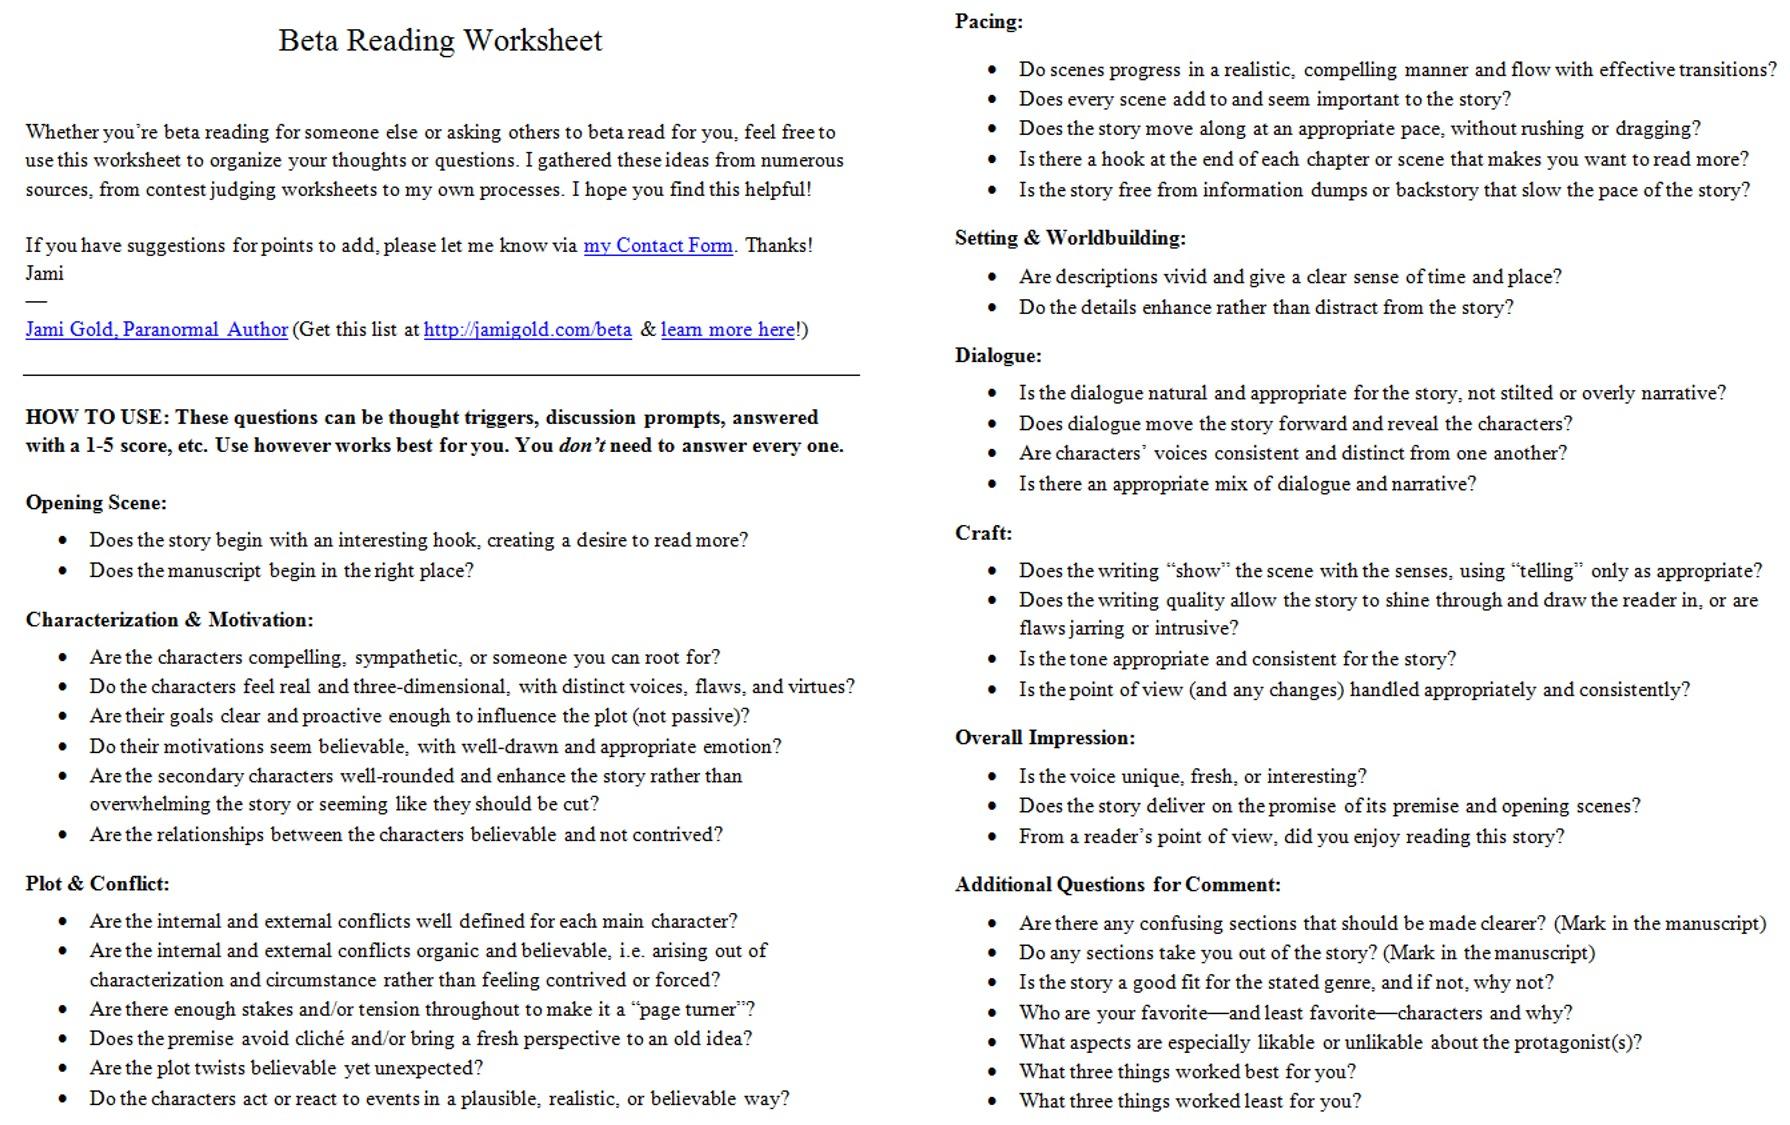 Weirdmailus  Pleasing Worksheets For Writers  Jami Gold Paranormal Author With Engaging Screen Shot Of The Twopage Beta Reading Worksheet With Appealing Proportional Relationship Graph Worksheet Also Story Composition Worksheets In Addition Esl Reading And Writing Worksheets And Skeletal System Fill In The Blank Worksheet As Well As Finance Worksheets Additionally Sine And Cosine Worksheet From Jamigoldcom With Weirdmailus  Engaging Worksheets For Writers  Jami Gold Paranormal Author With Appealing Screen Shot Of The Twopage Beta Reading Worksheet And Pleasing Proportional Relationship Graph Worksheet Also Story Composition Worksheets In Addition Esl Reading And Writing Worksheets From Jamigoldcom